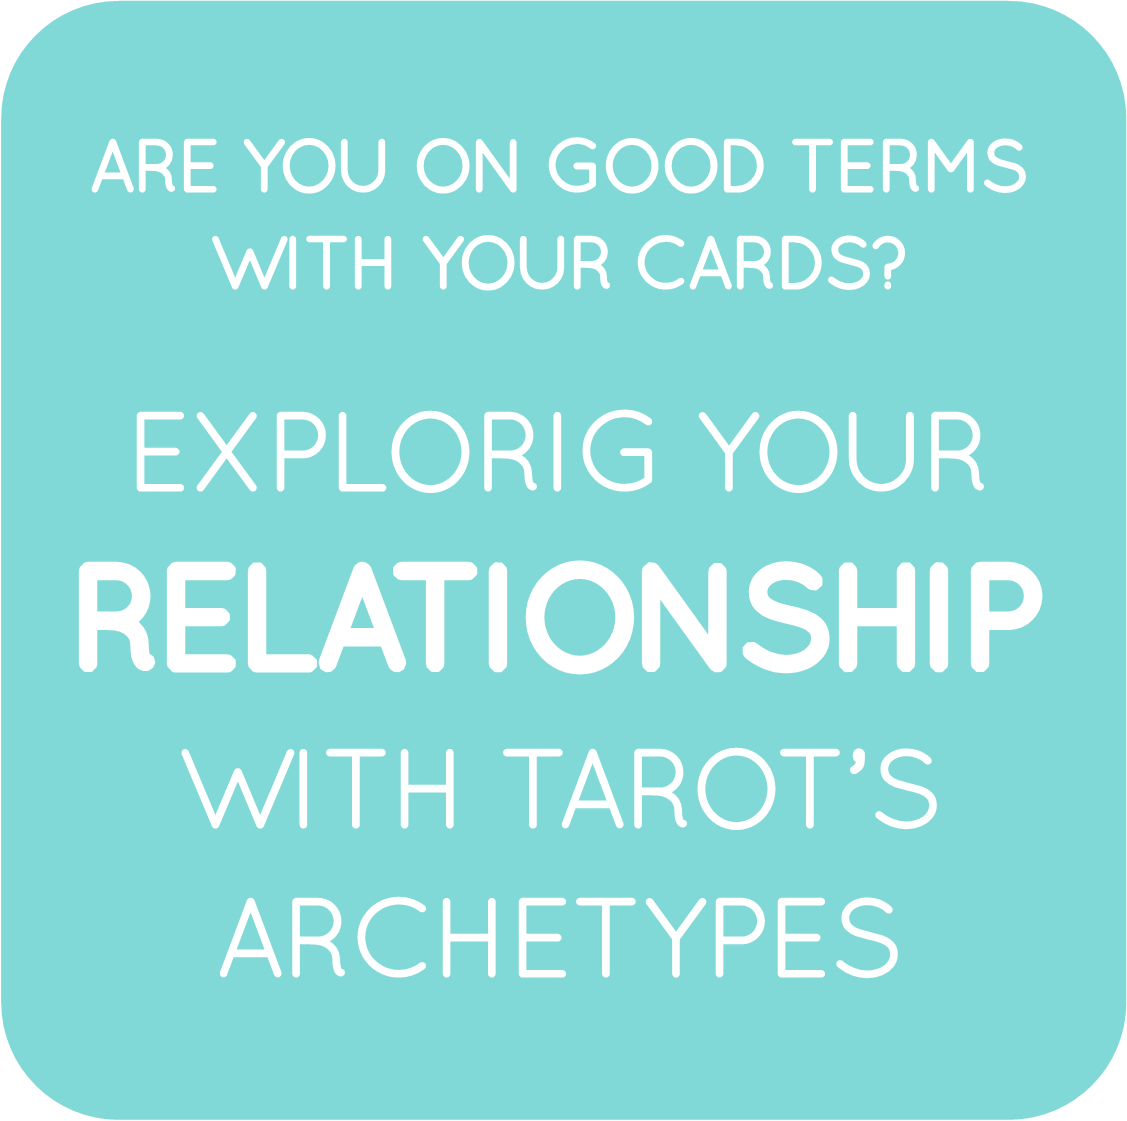 21-are you on good terms with your cards.png